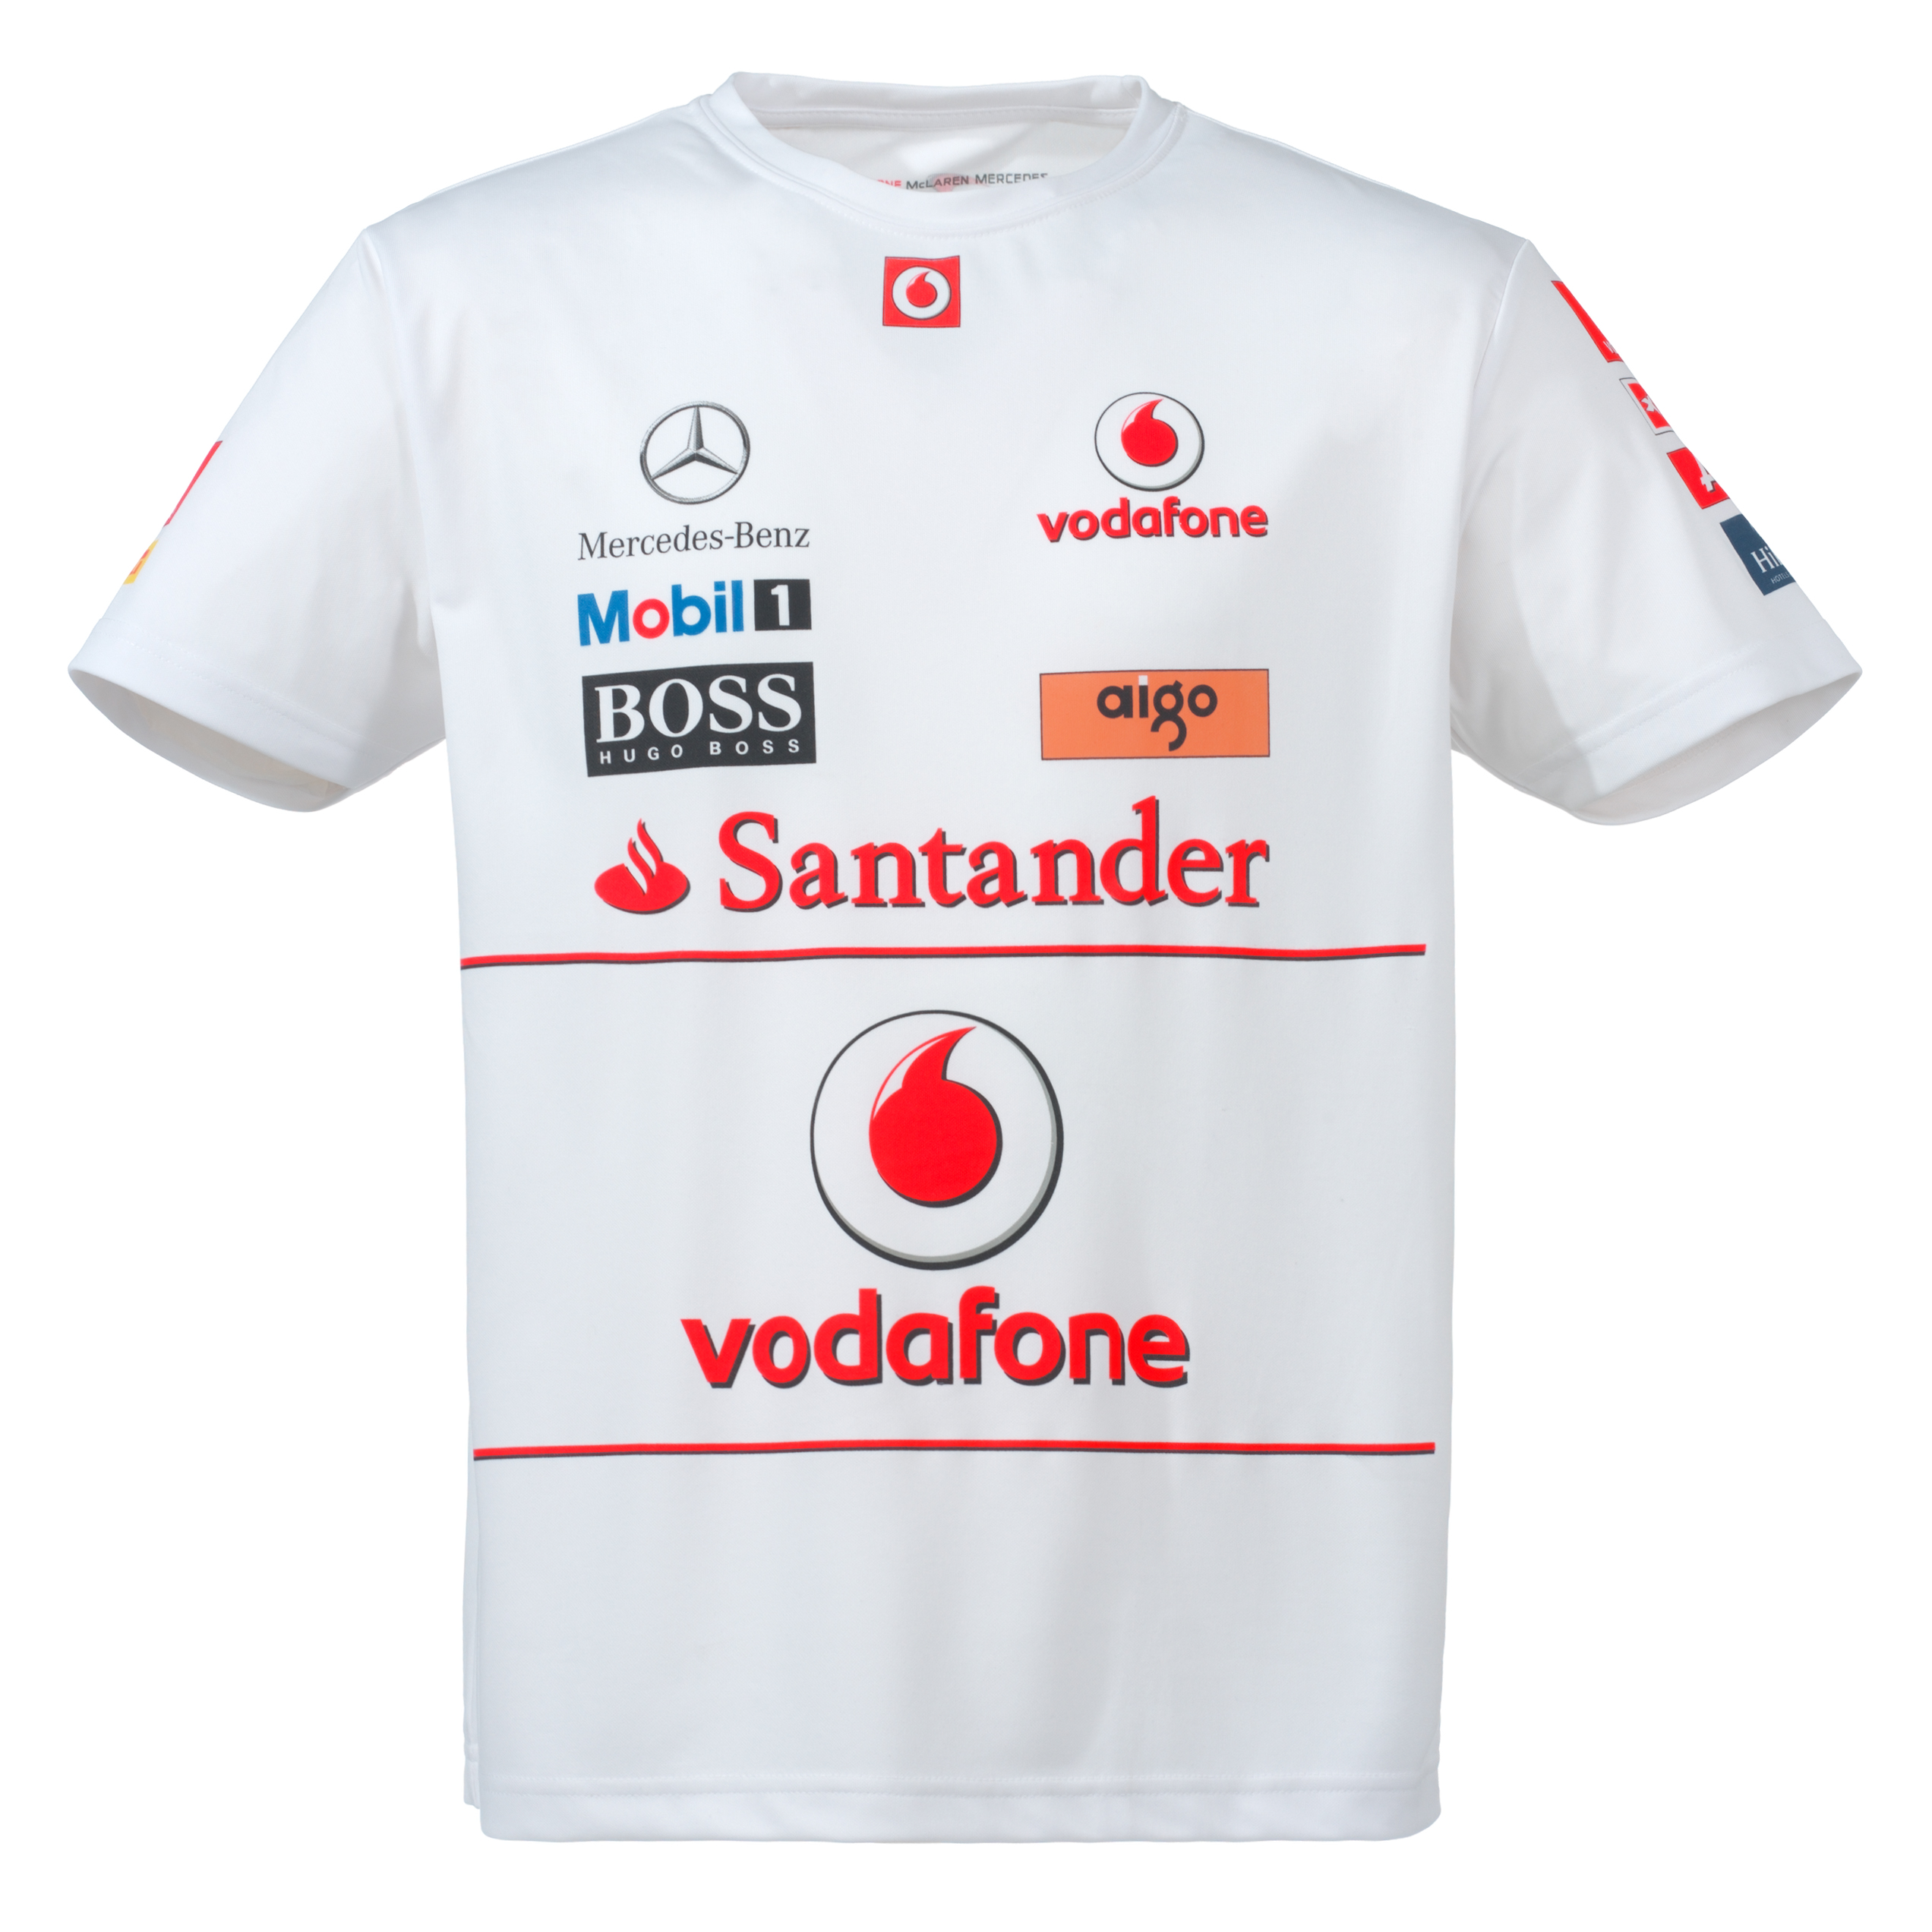 Vodafone McLaren Mercedes 2011 Team Race T-Shirt